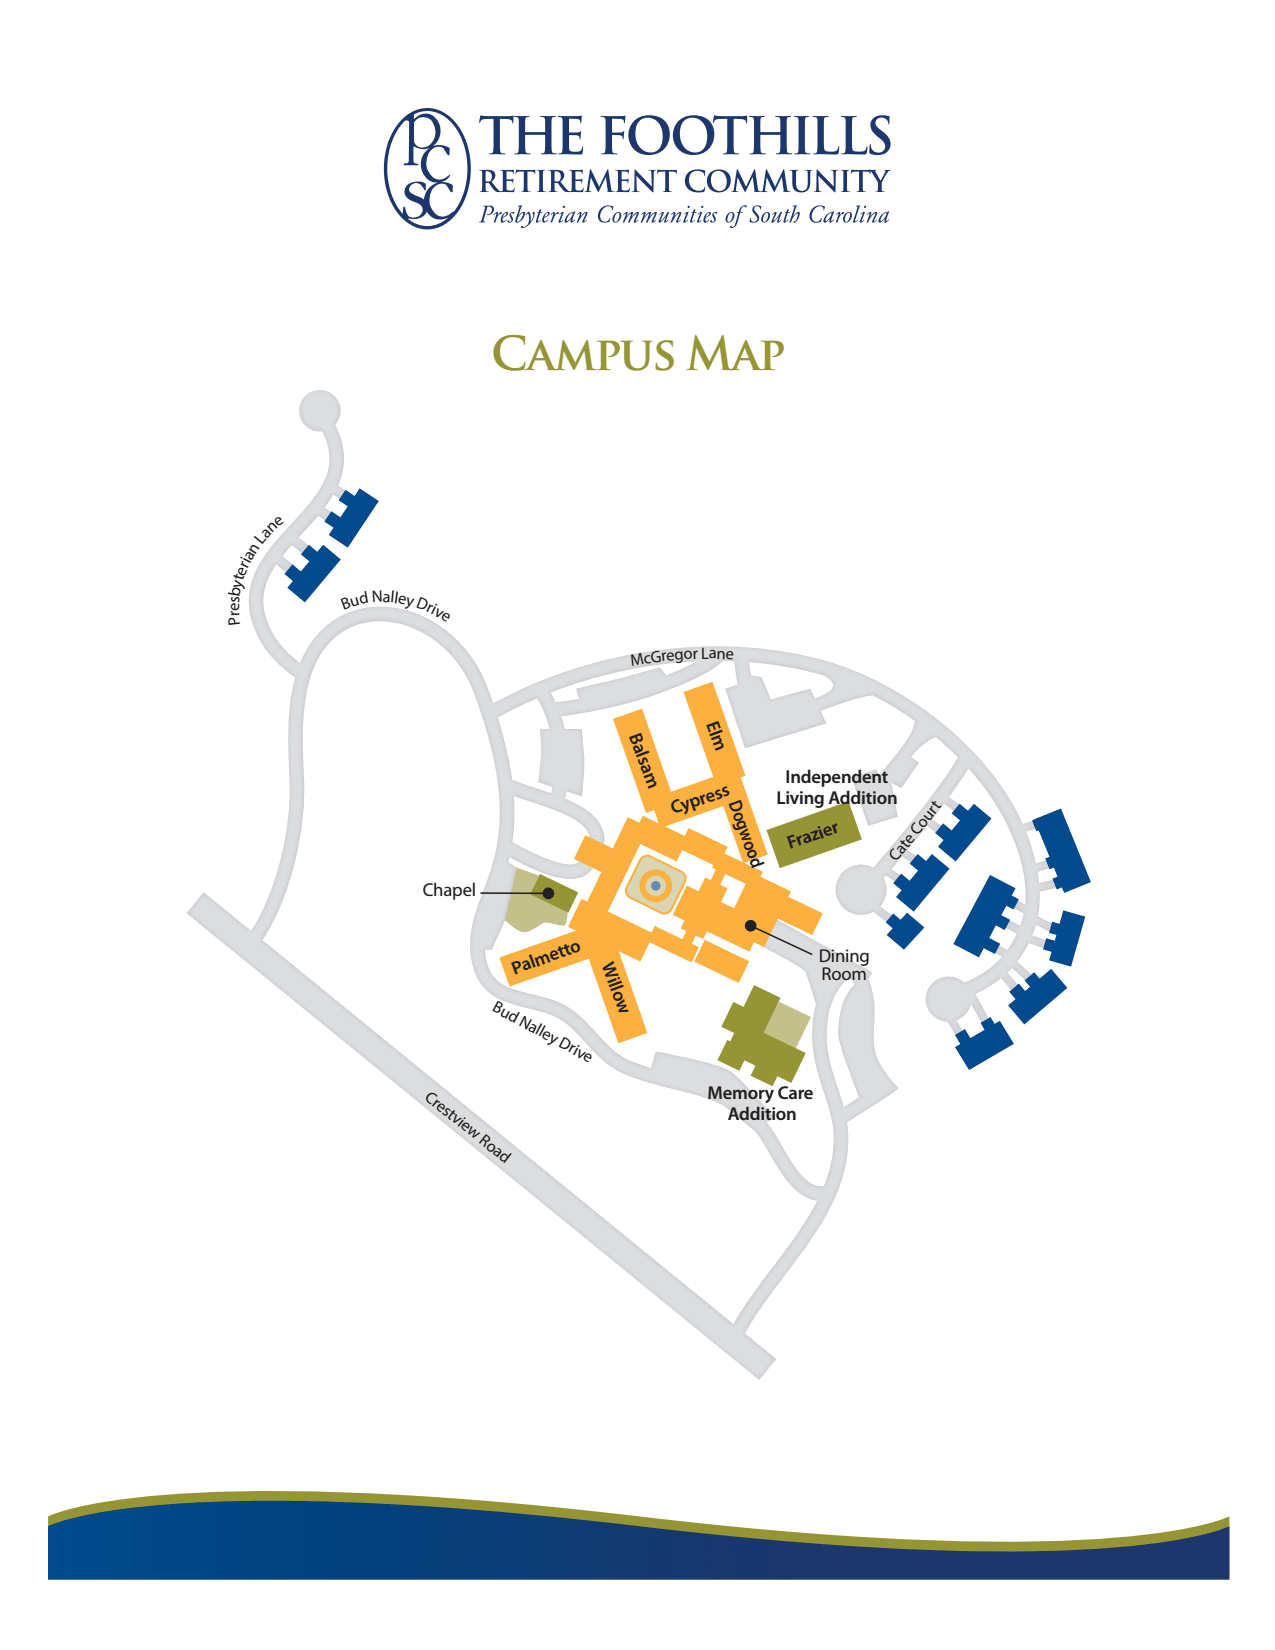 Campus map of The Foothills Presbyterian Community in Easley